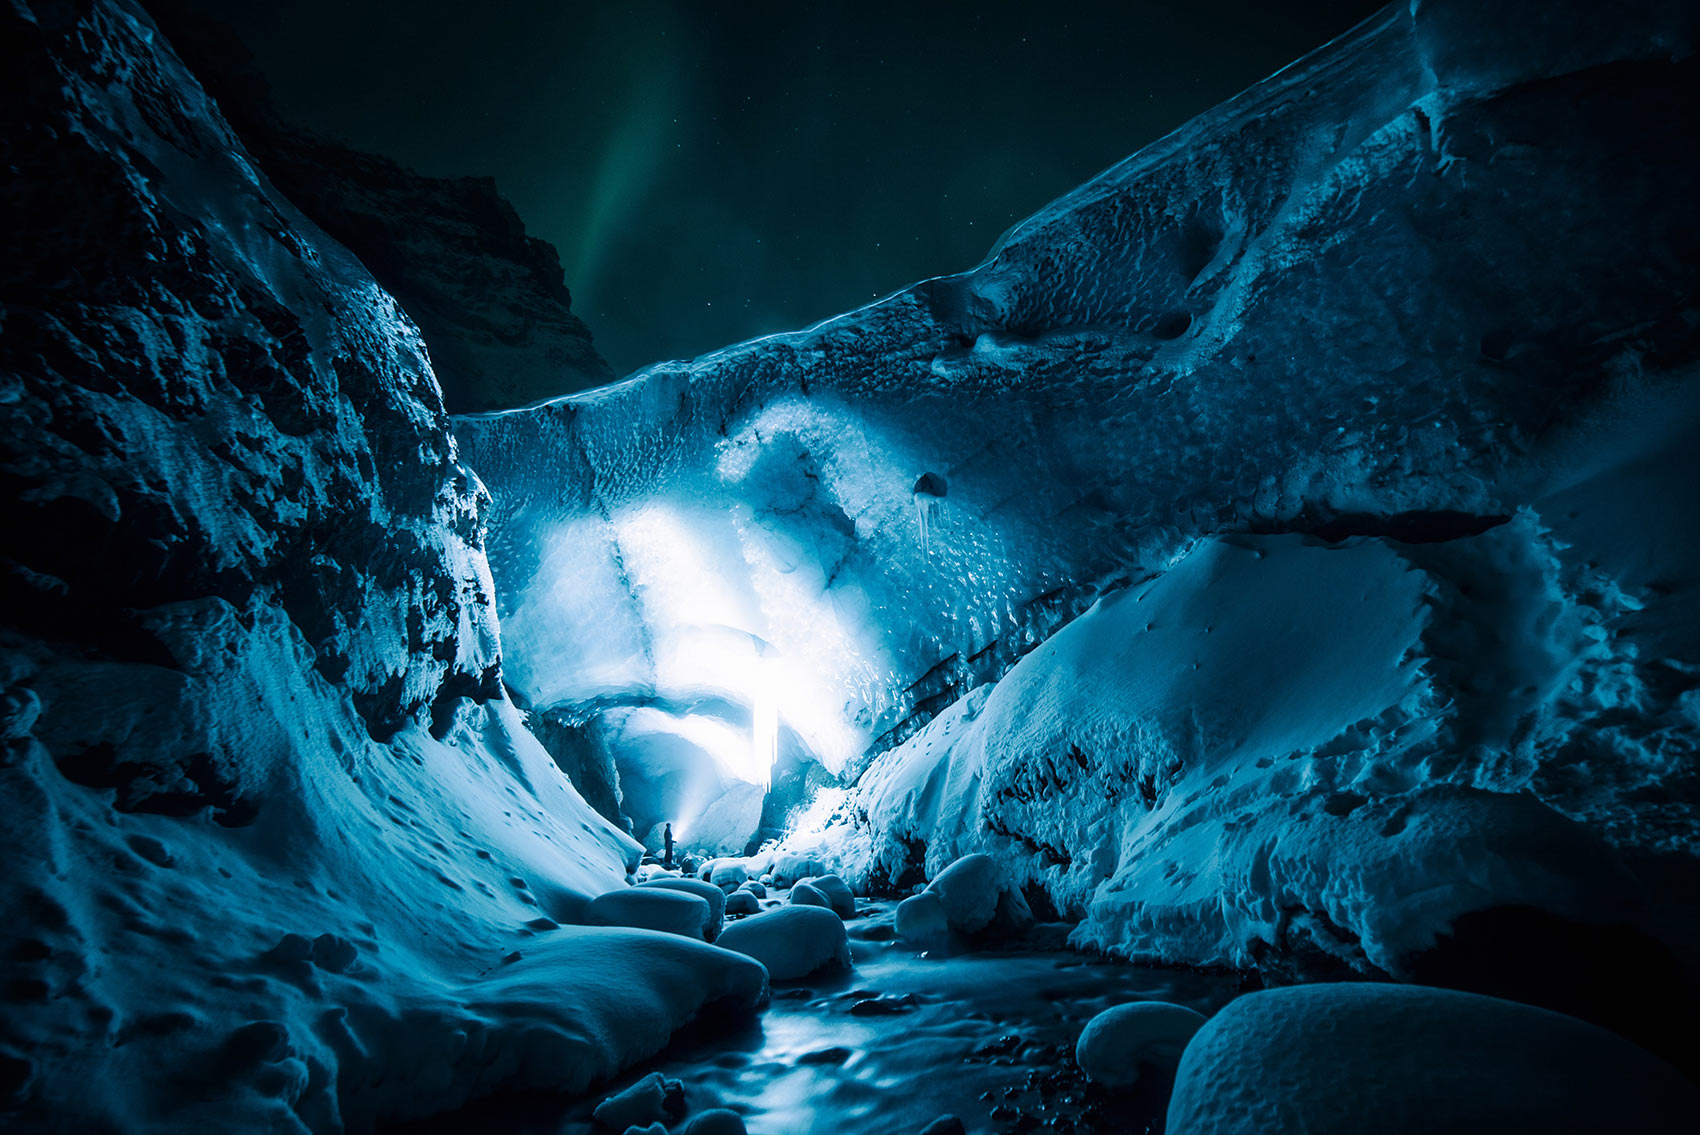 Exploring the great ice cavern